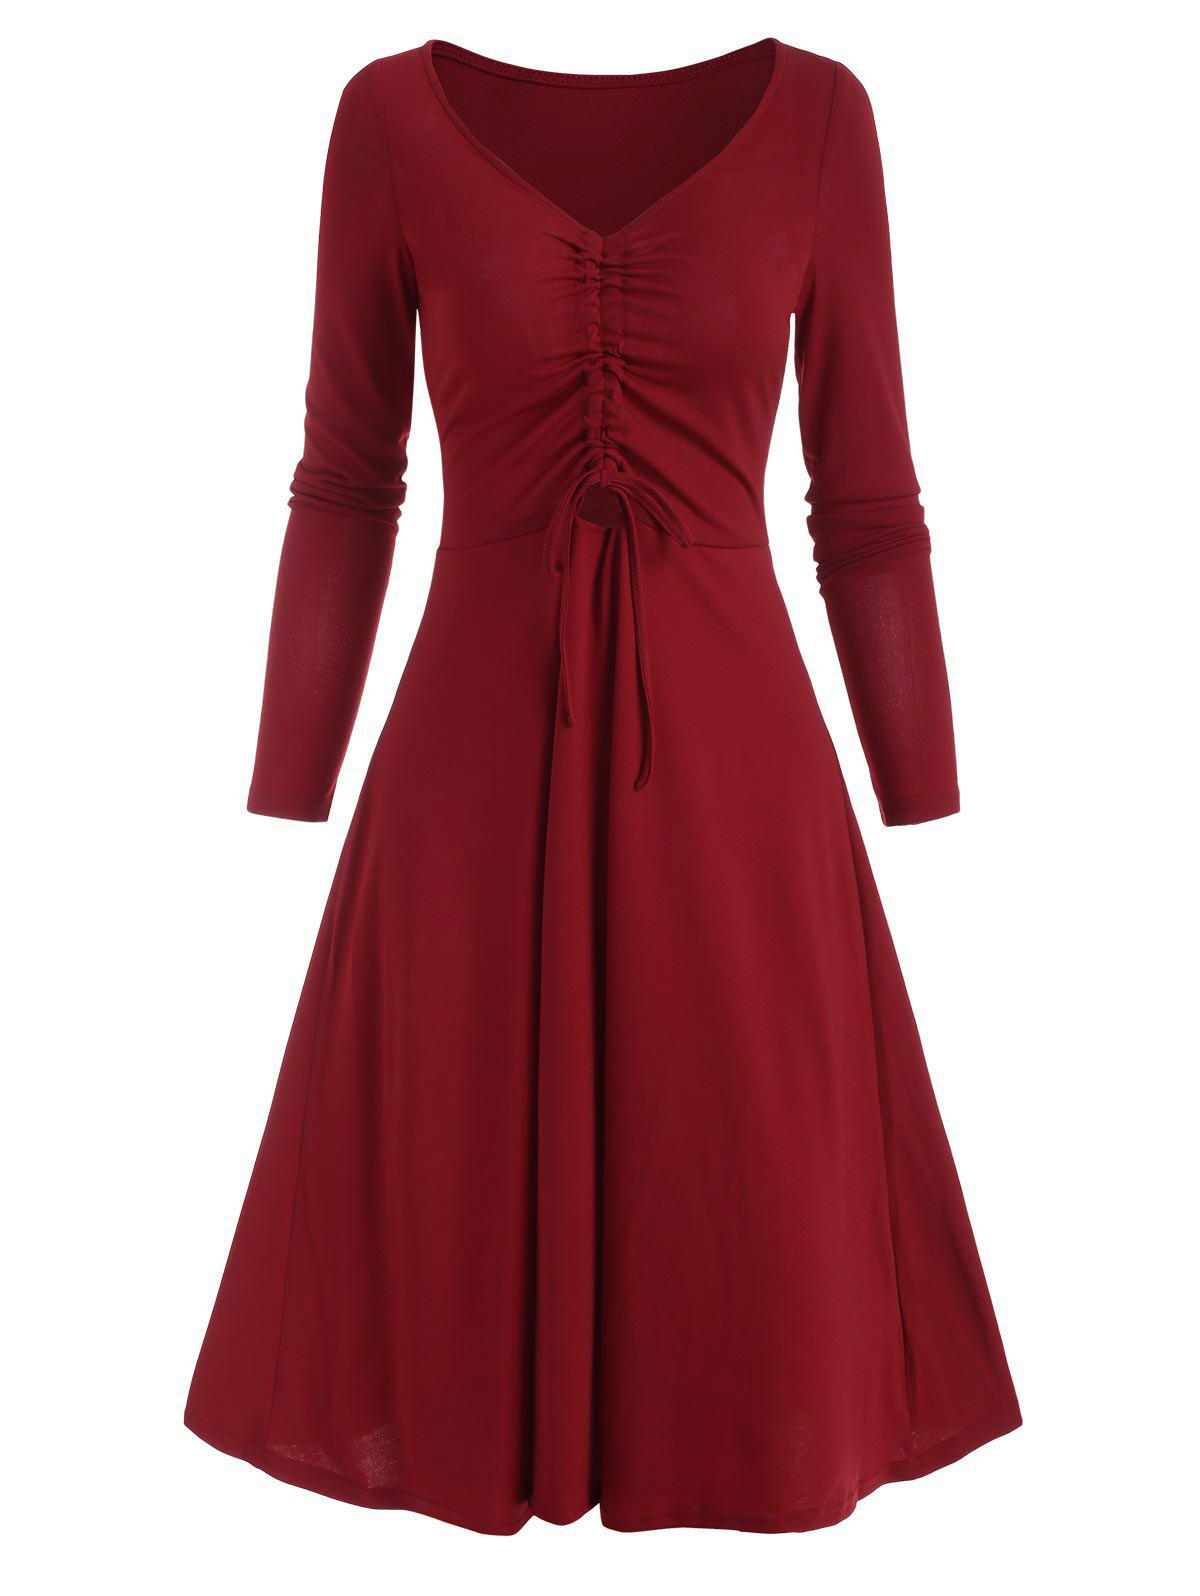 Cinched Ruched Front A Line Long Sleeve Dress - DEEP RED L